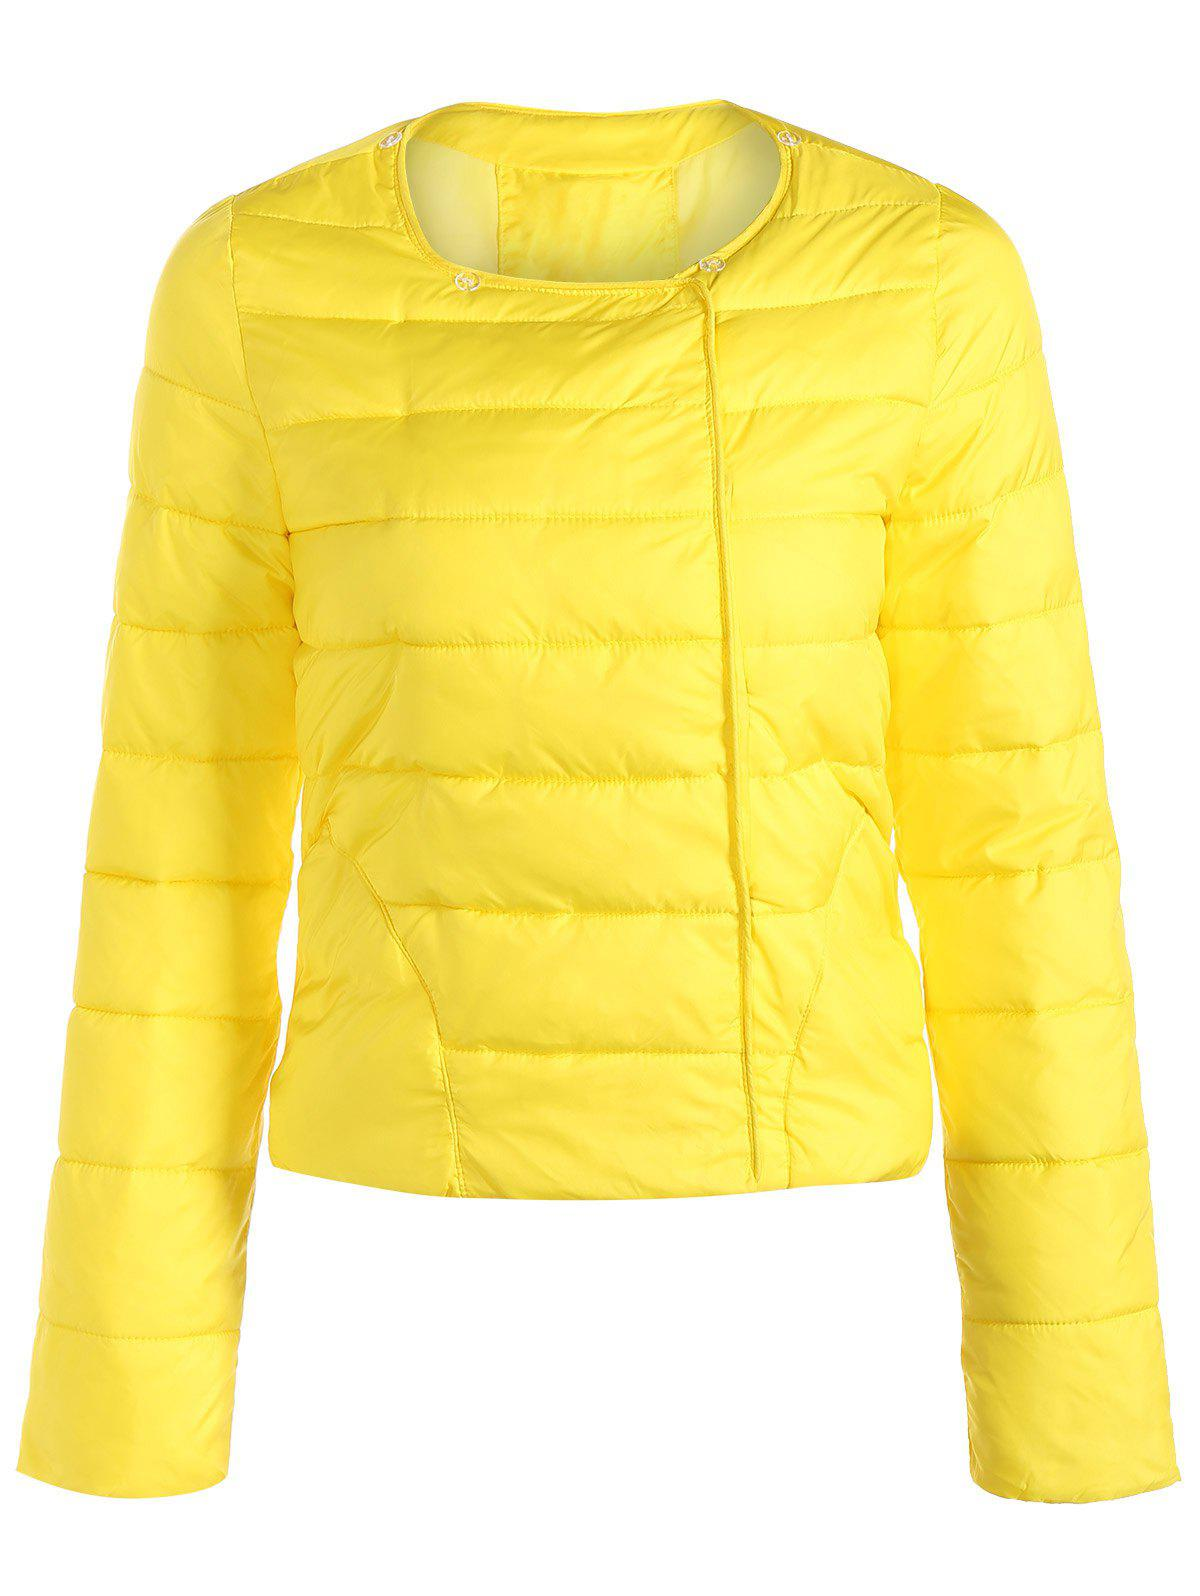 2018 Double Pocket Short Slim Quilted Jacket In Yellow Xl Rosegal